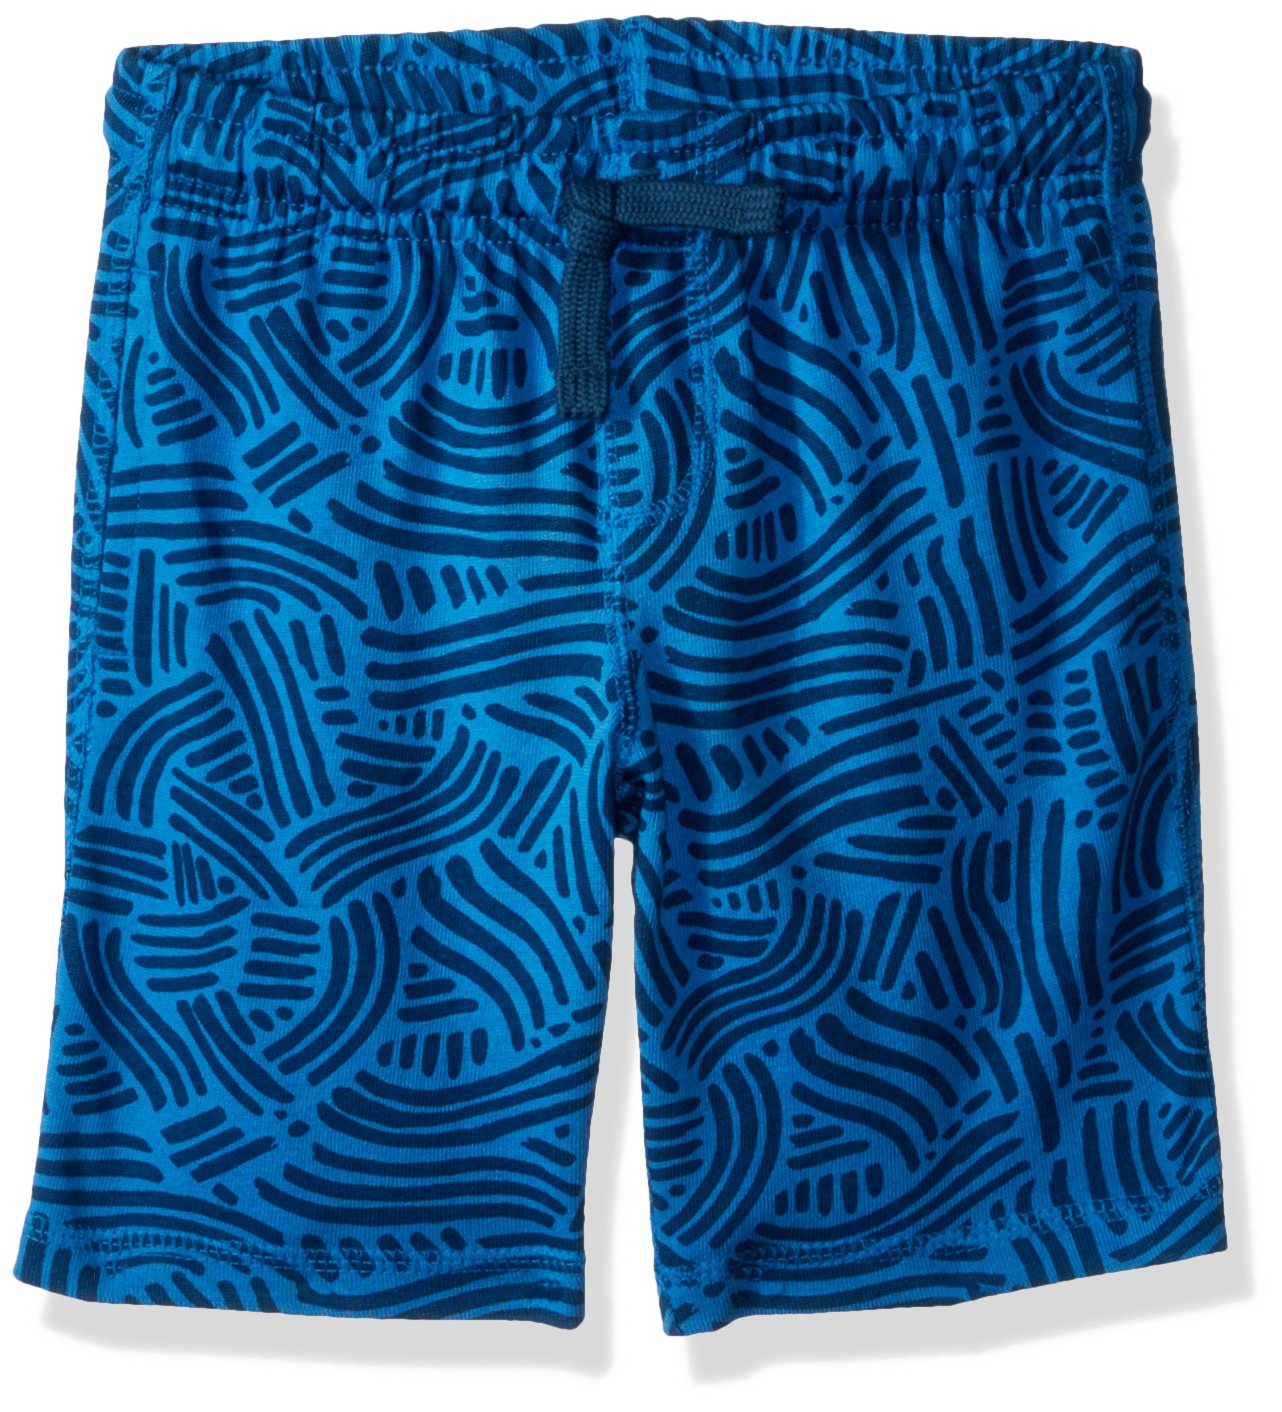 Gymboree Little Boys' Drawstring Easy Knit Shorts, Blue Squiggle, S